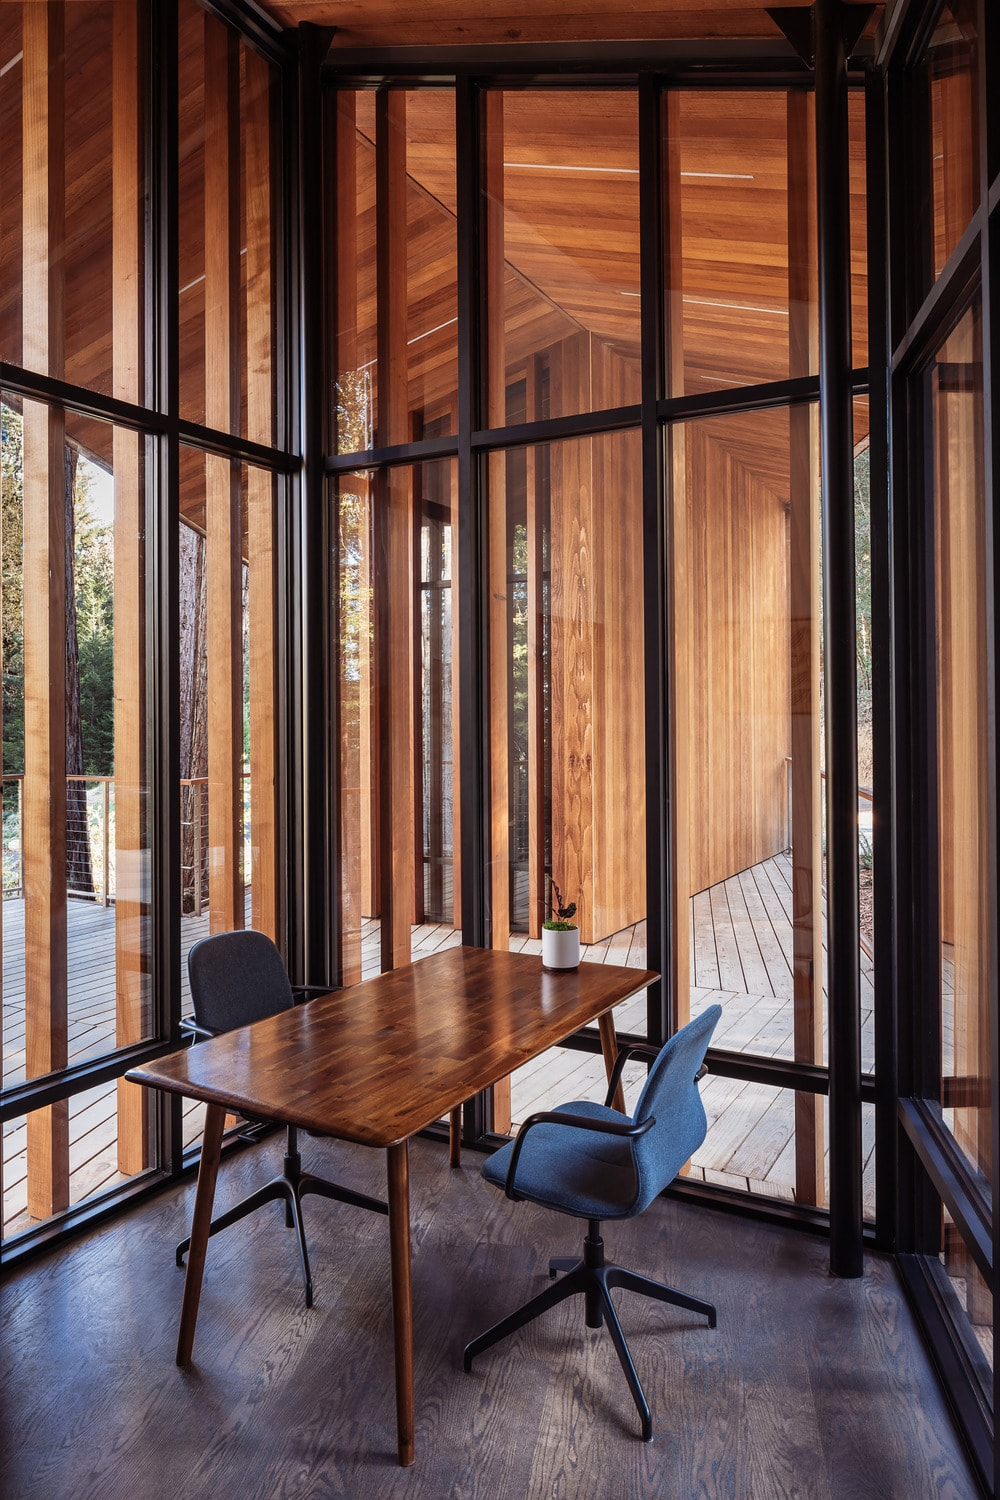 This is an interior view of the glass wall fitted with a simple home office by the corner.